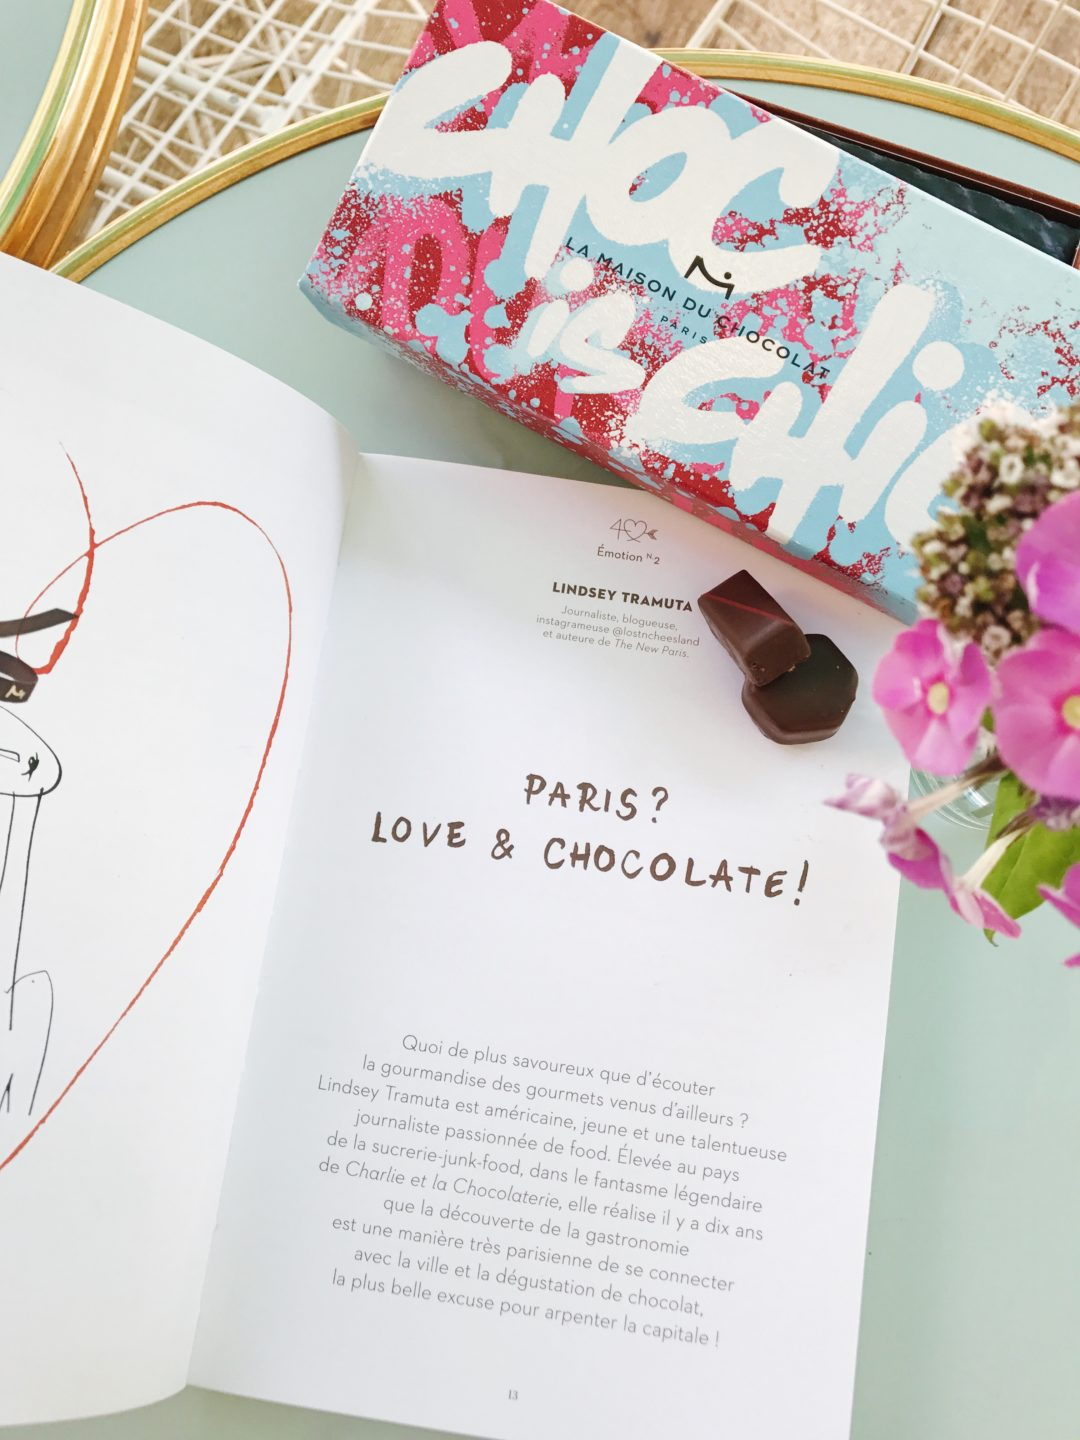 La Maison du Chocolat 40th anniversary book